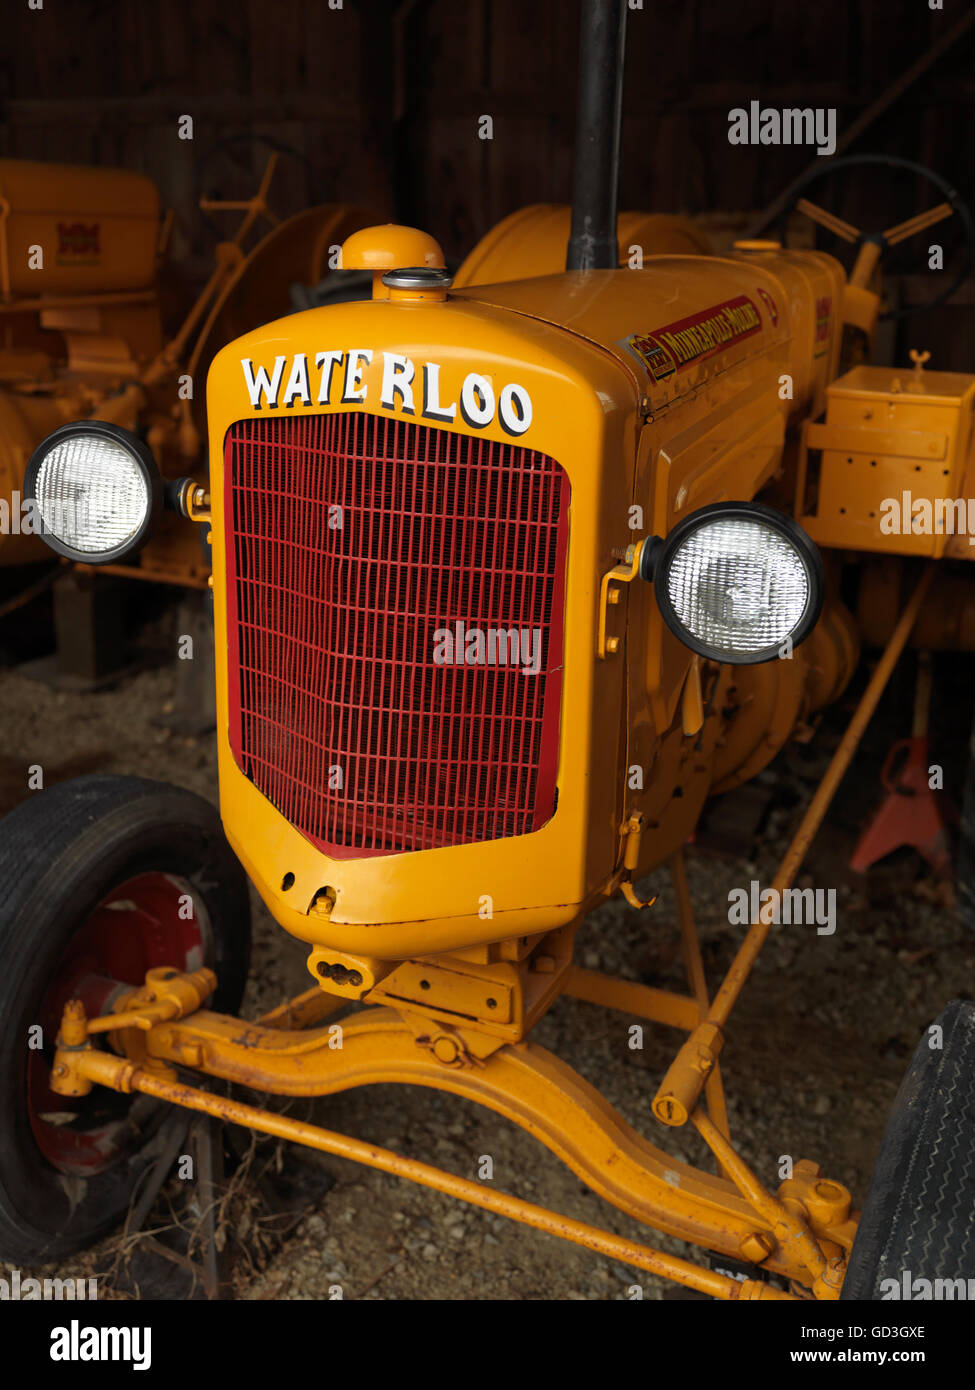 Minneapolis-Moline MM Waterloo vintage tractor - Stock Image